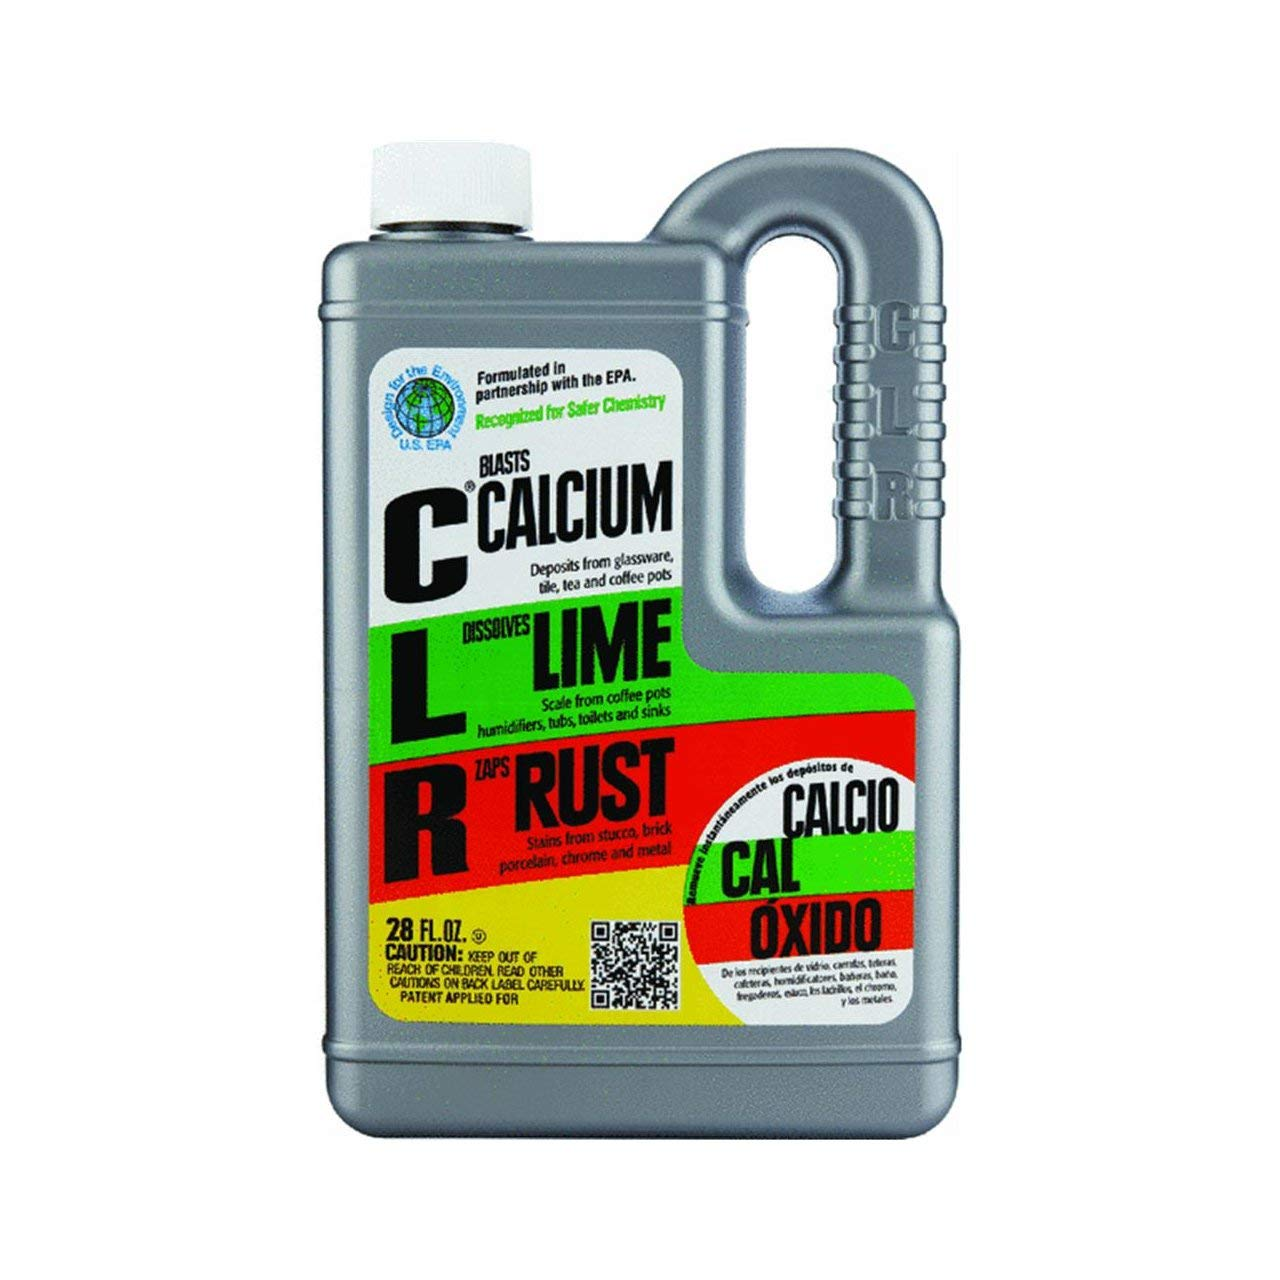 CLR Calcium, Lime, and Rust Remover 28 oz - 2 Pack (4 Pack) by CLR (Image #1)